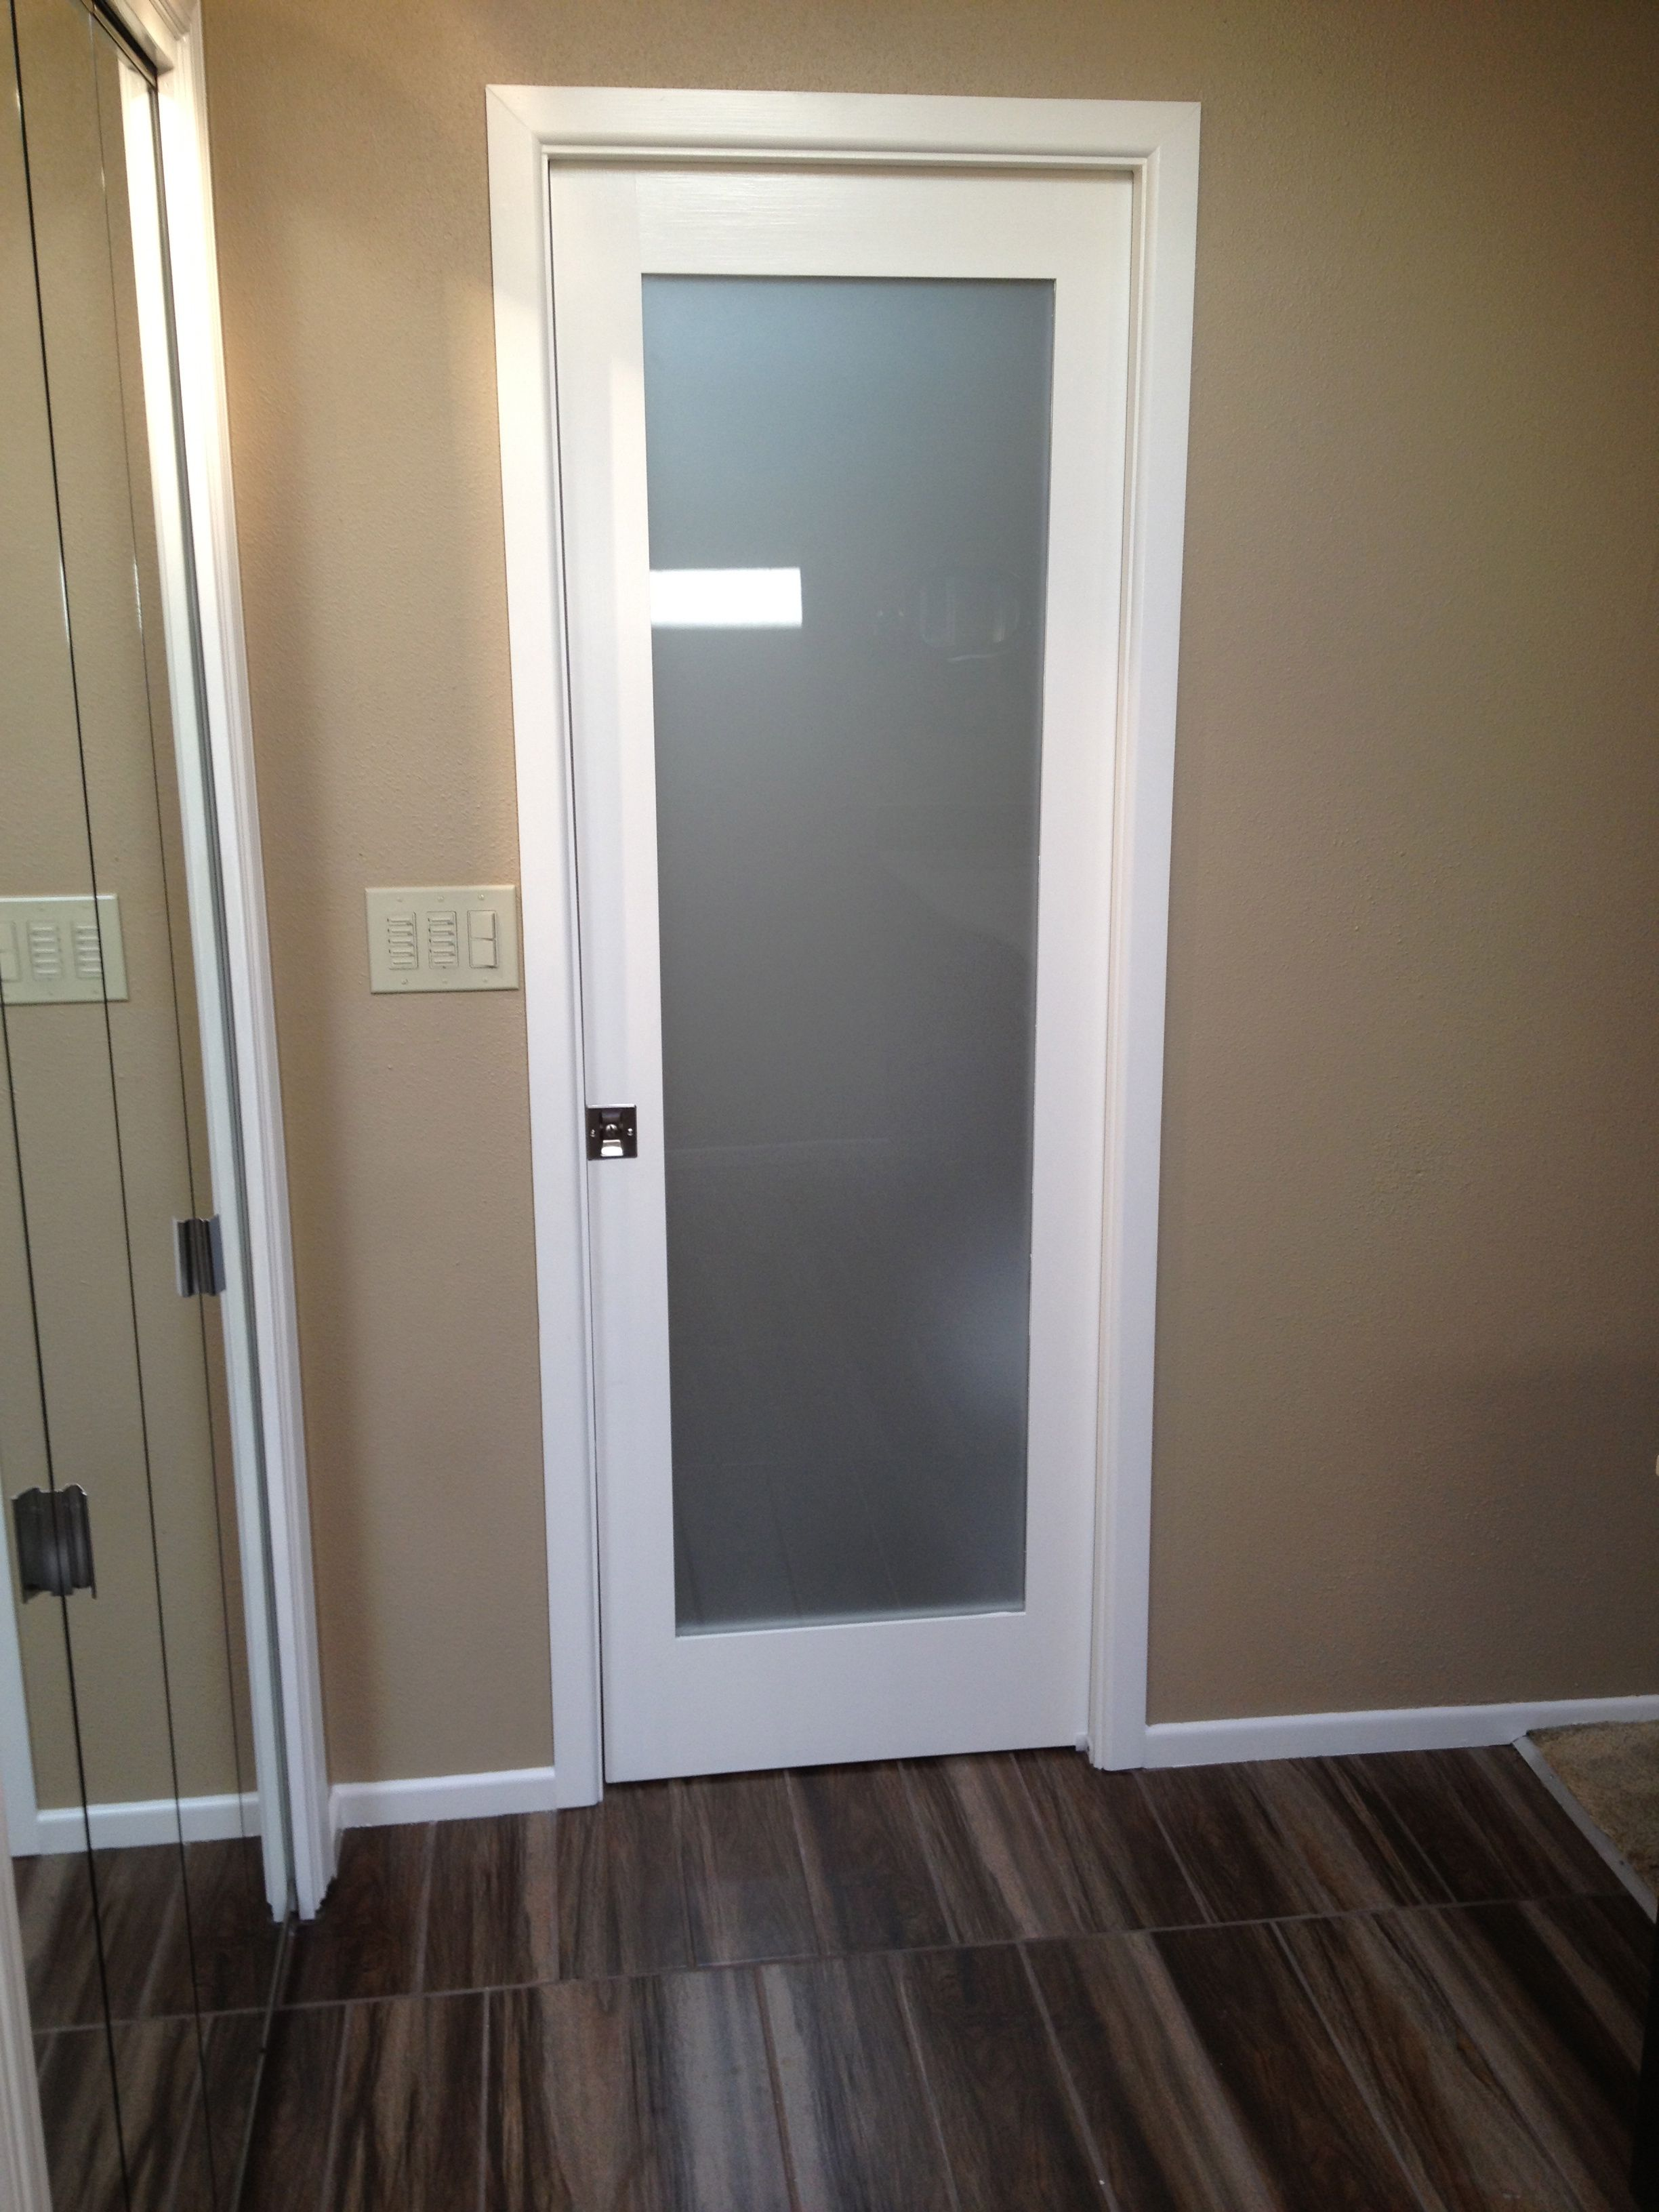 Frosted glass pocket door shore house ideas pinterest for Modern glass pocket doors